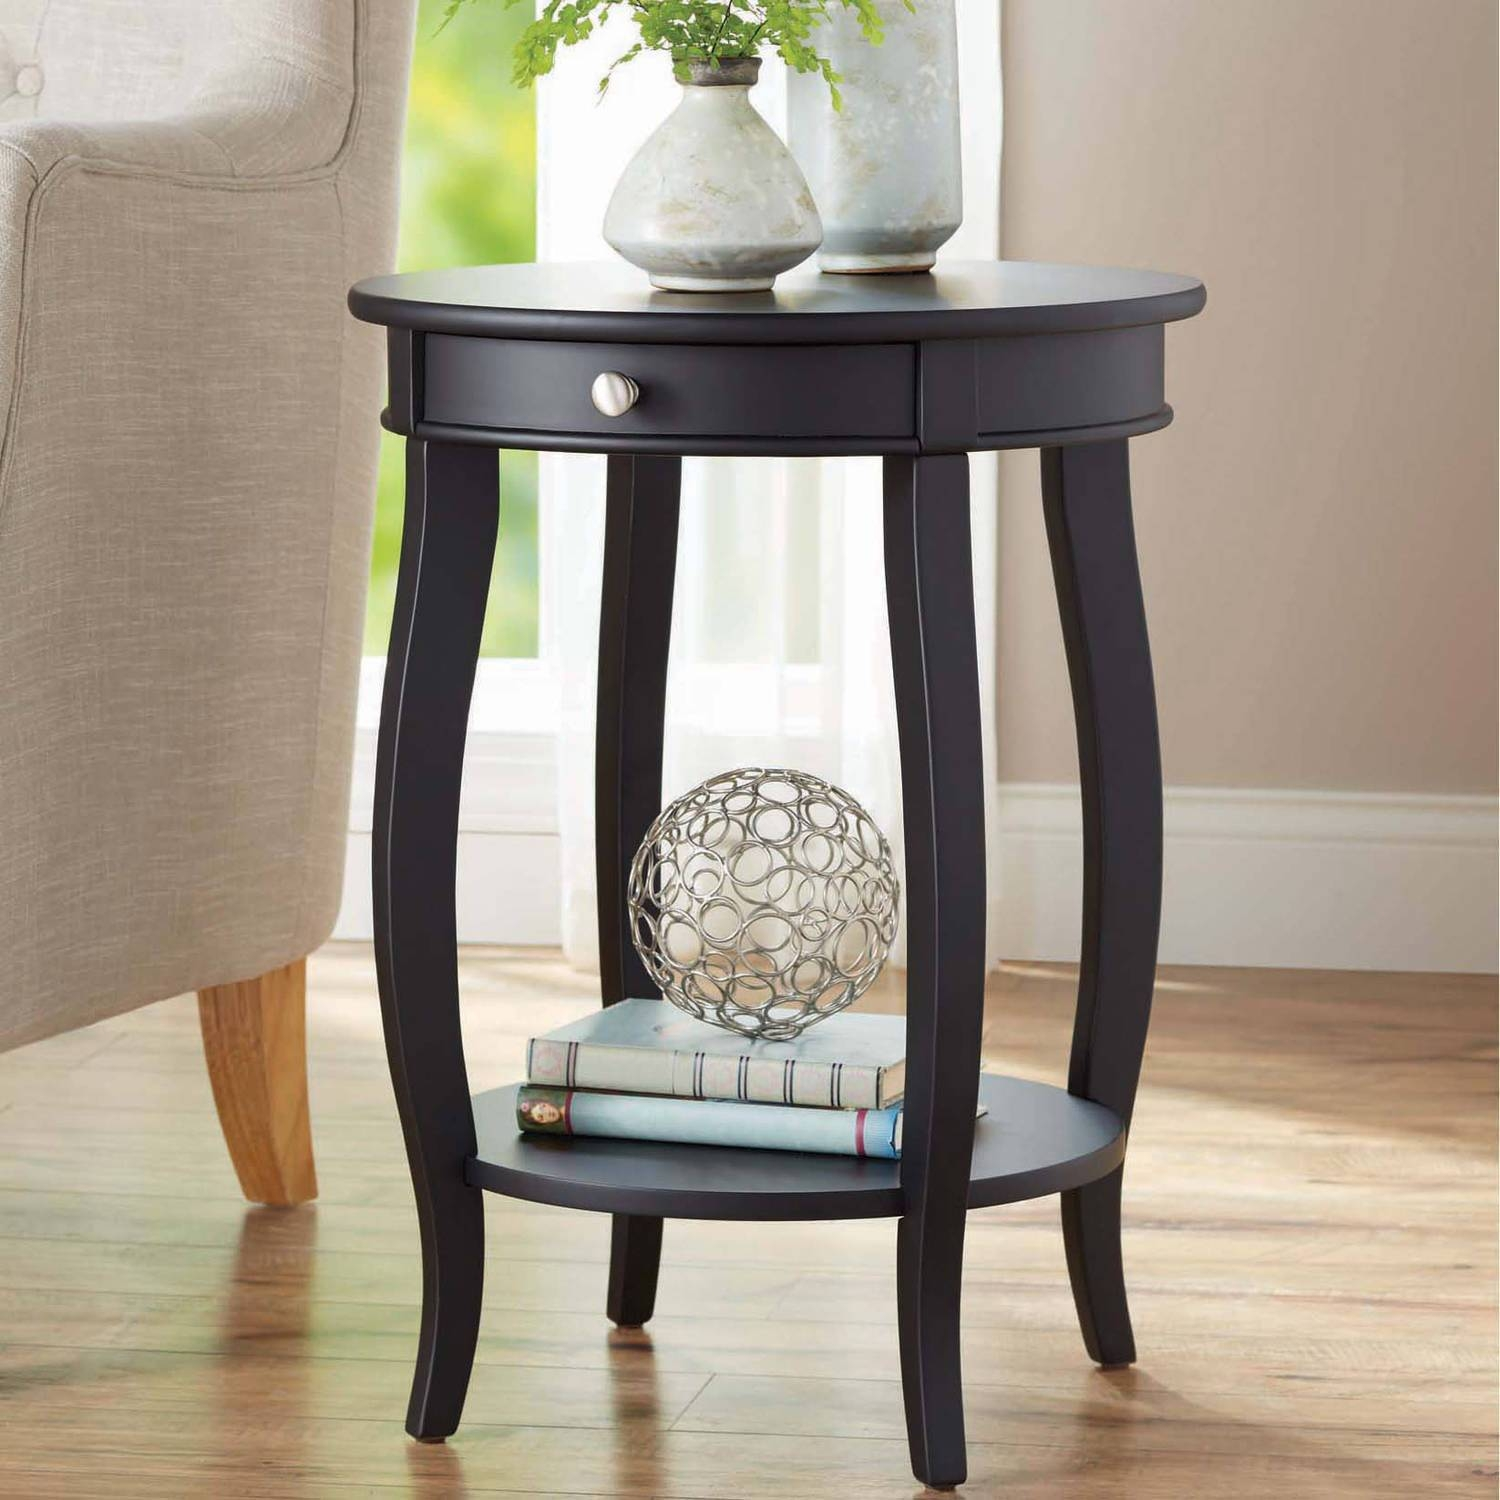 Better Homes And Gardens Round Accent Table With Drawer, Multiple with Round Coffee Tables With Drawer (Image 3 of 30)